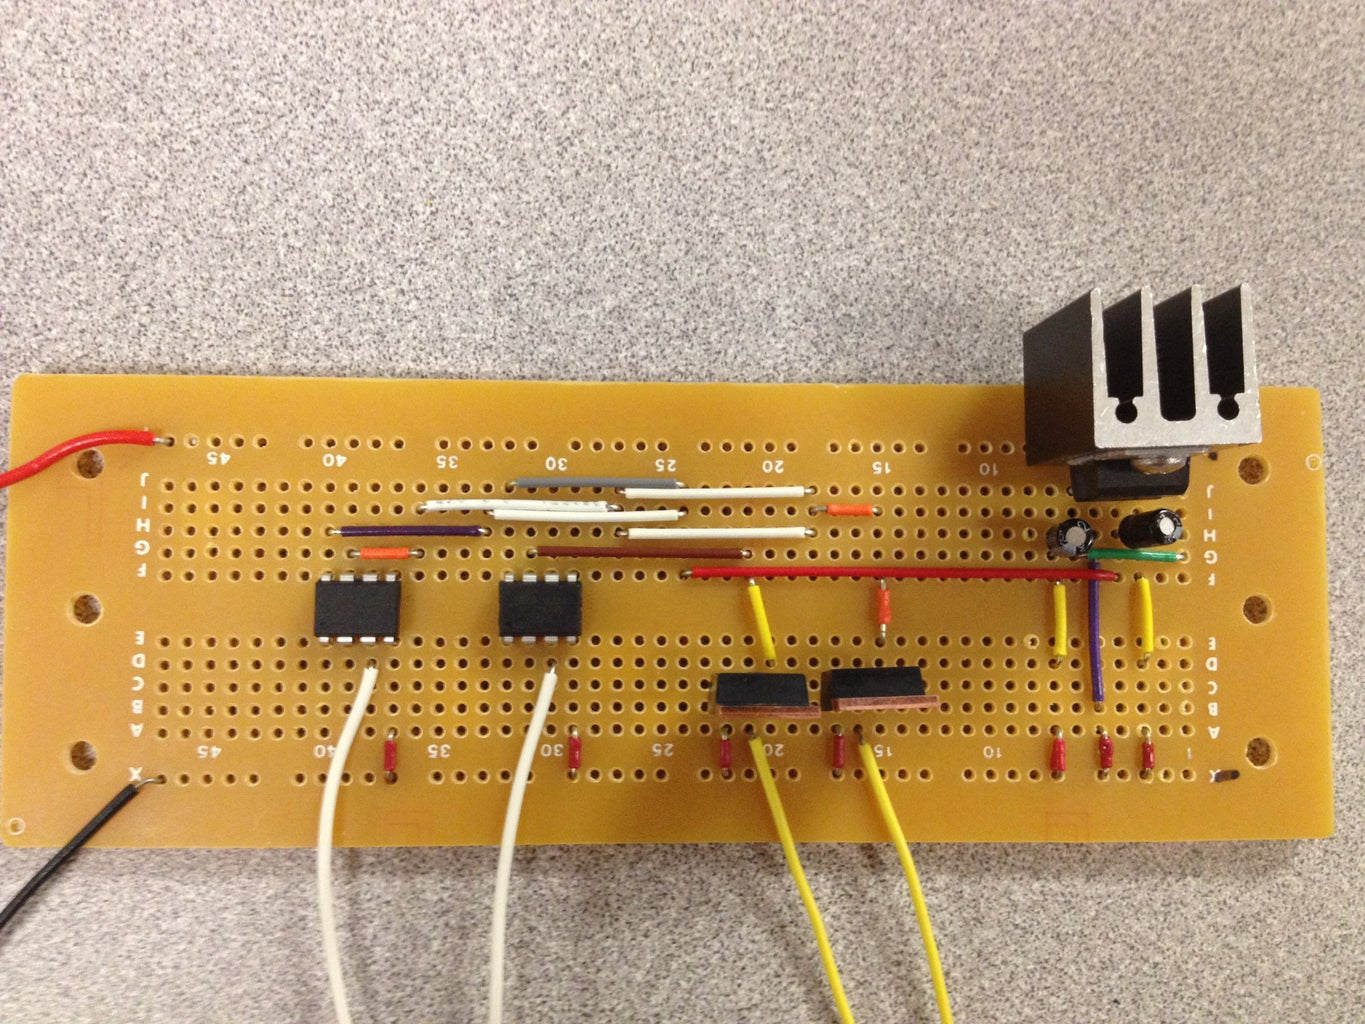 Screw Capacitive Touch Sensor PCB to Wall